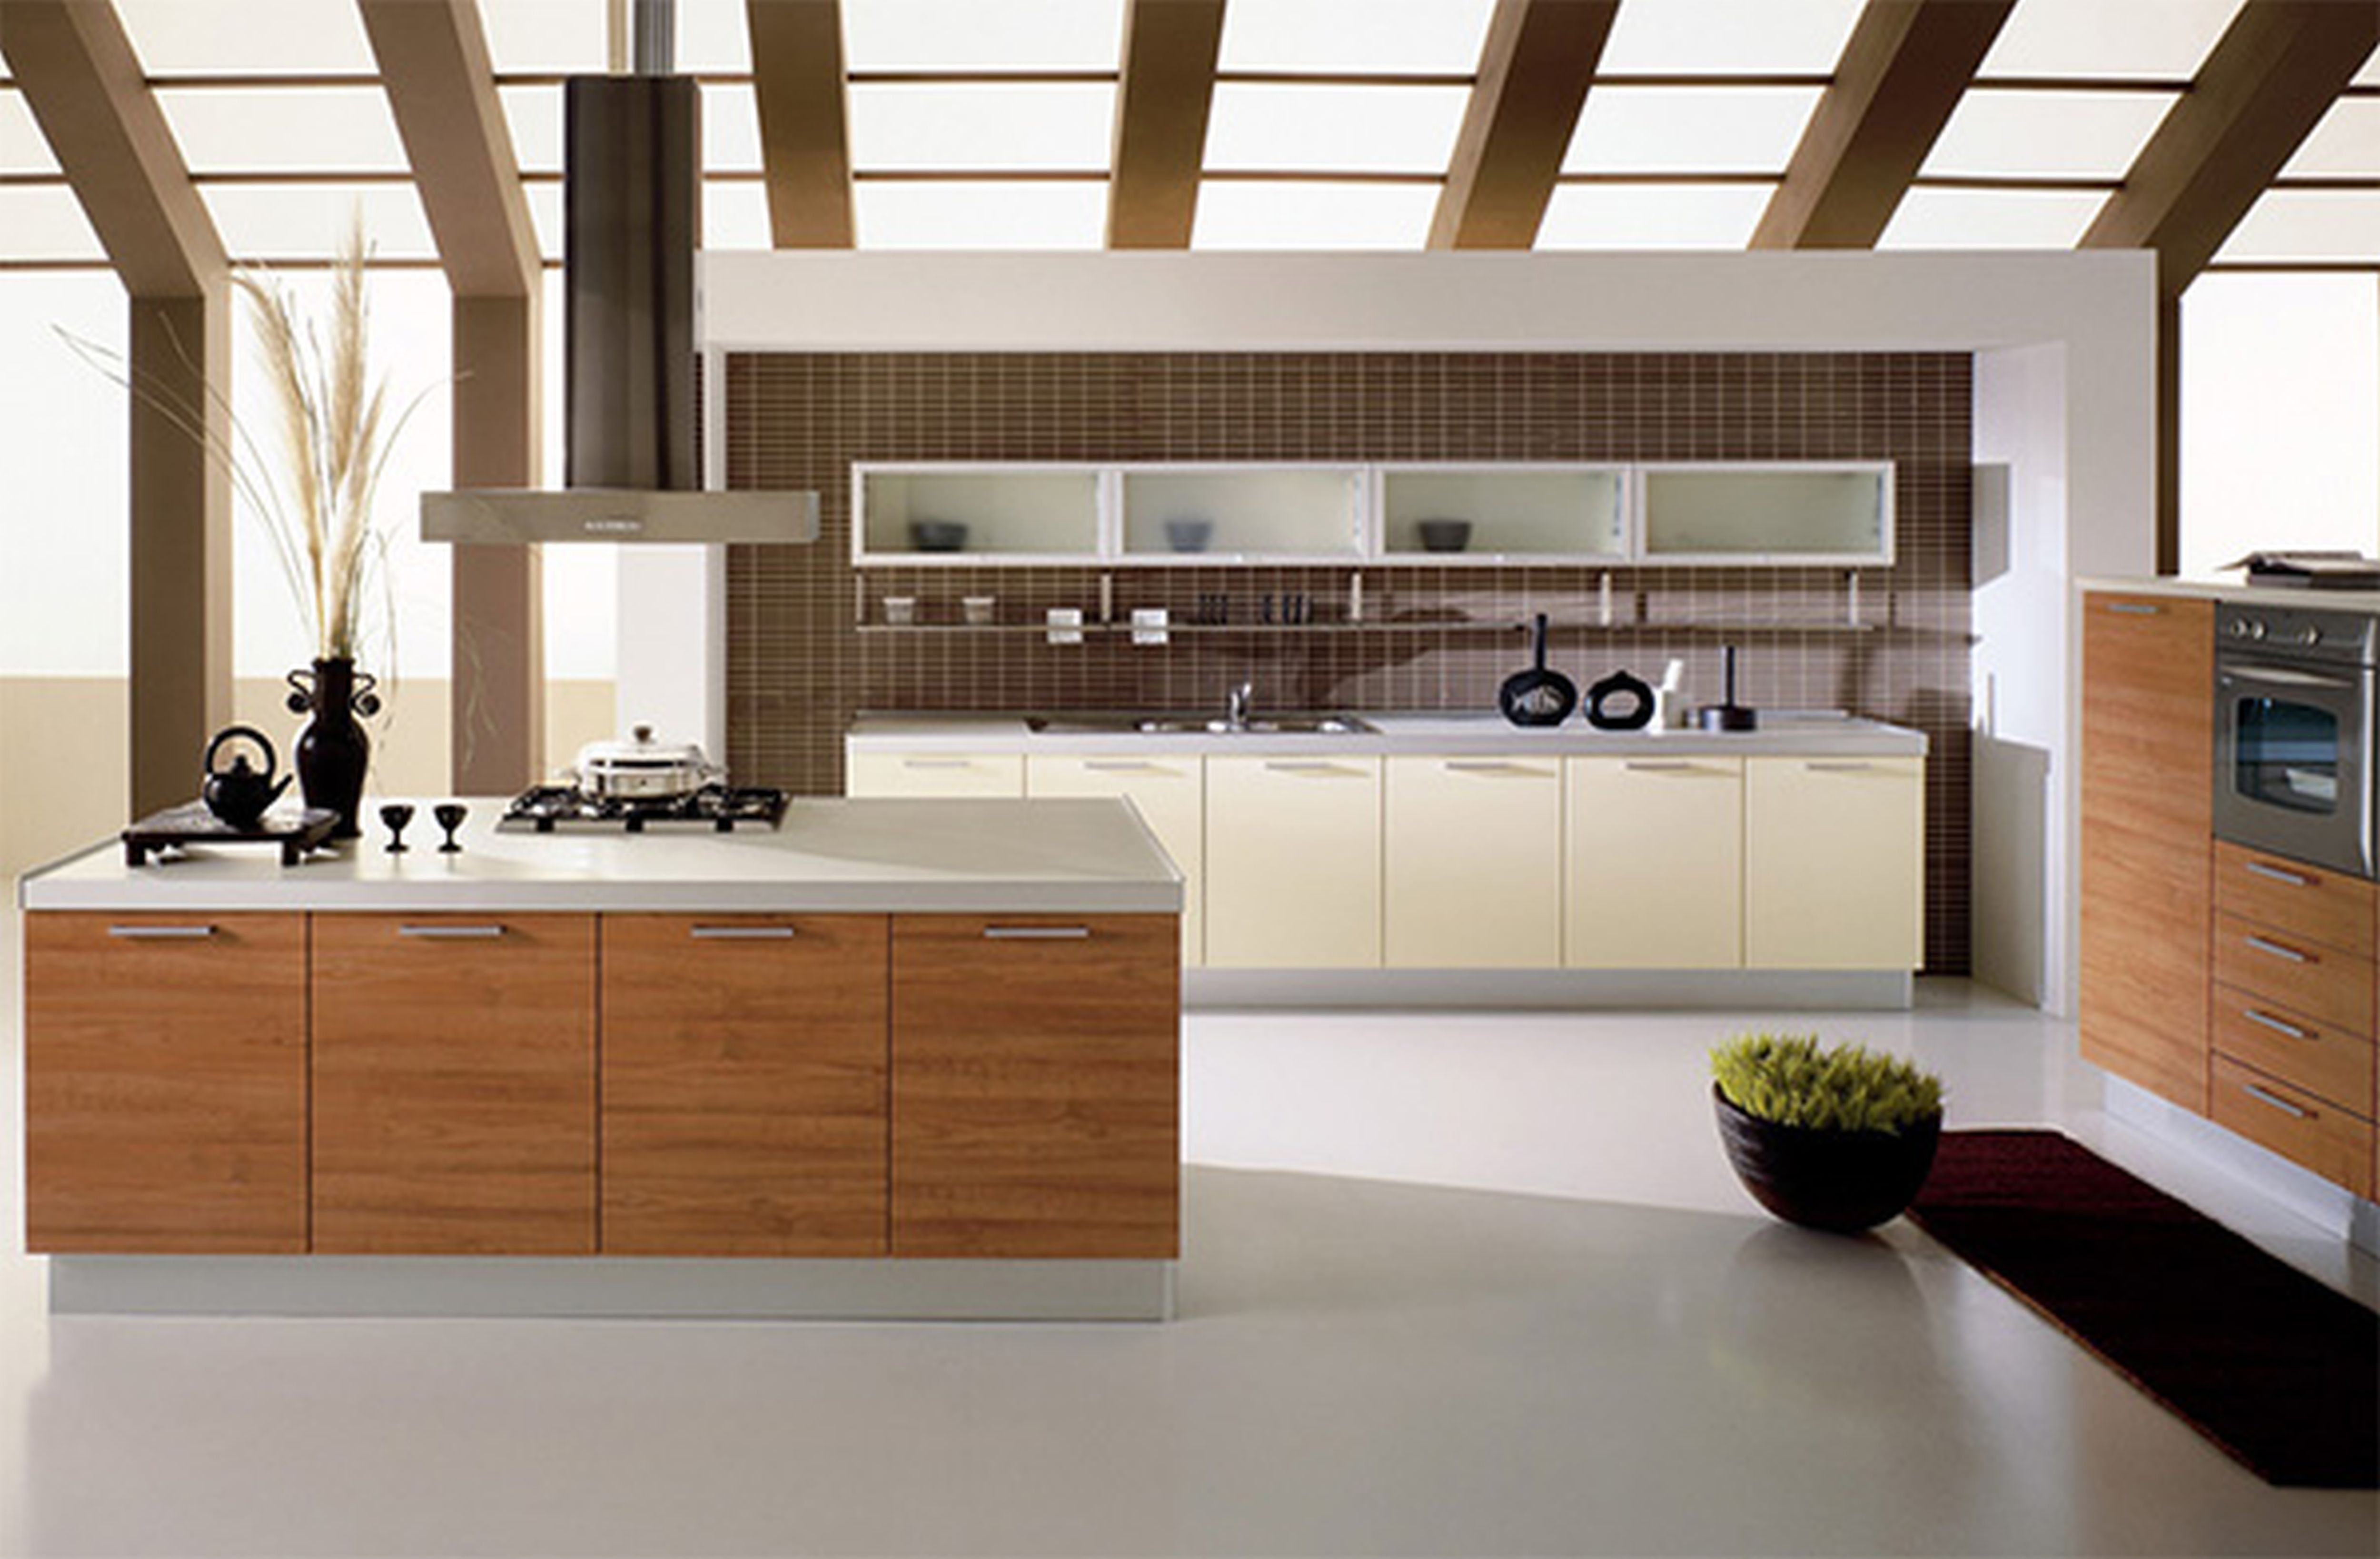 Furniture Kitchen Exquisite Beautiful Contemporary Kitchen Design Green Building Idea